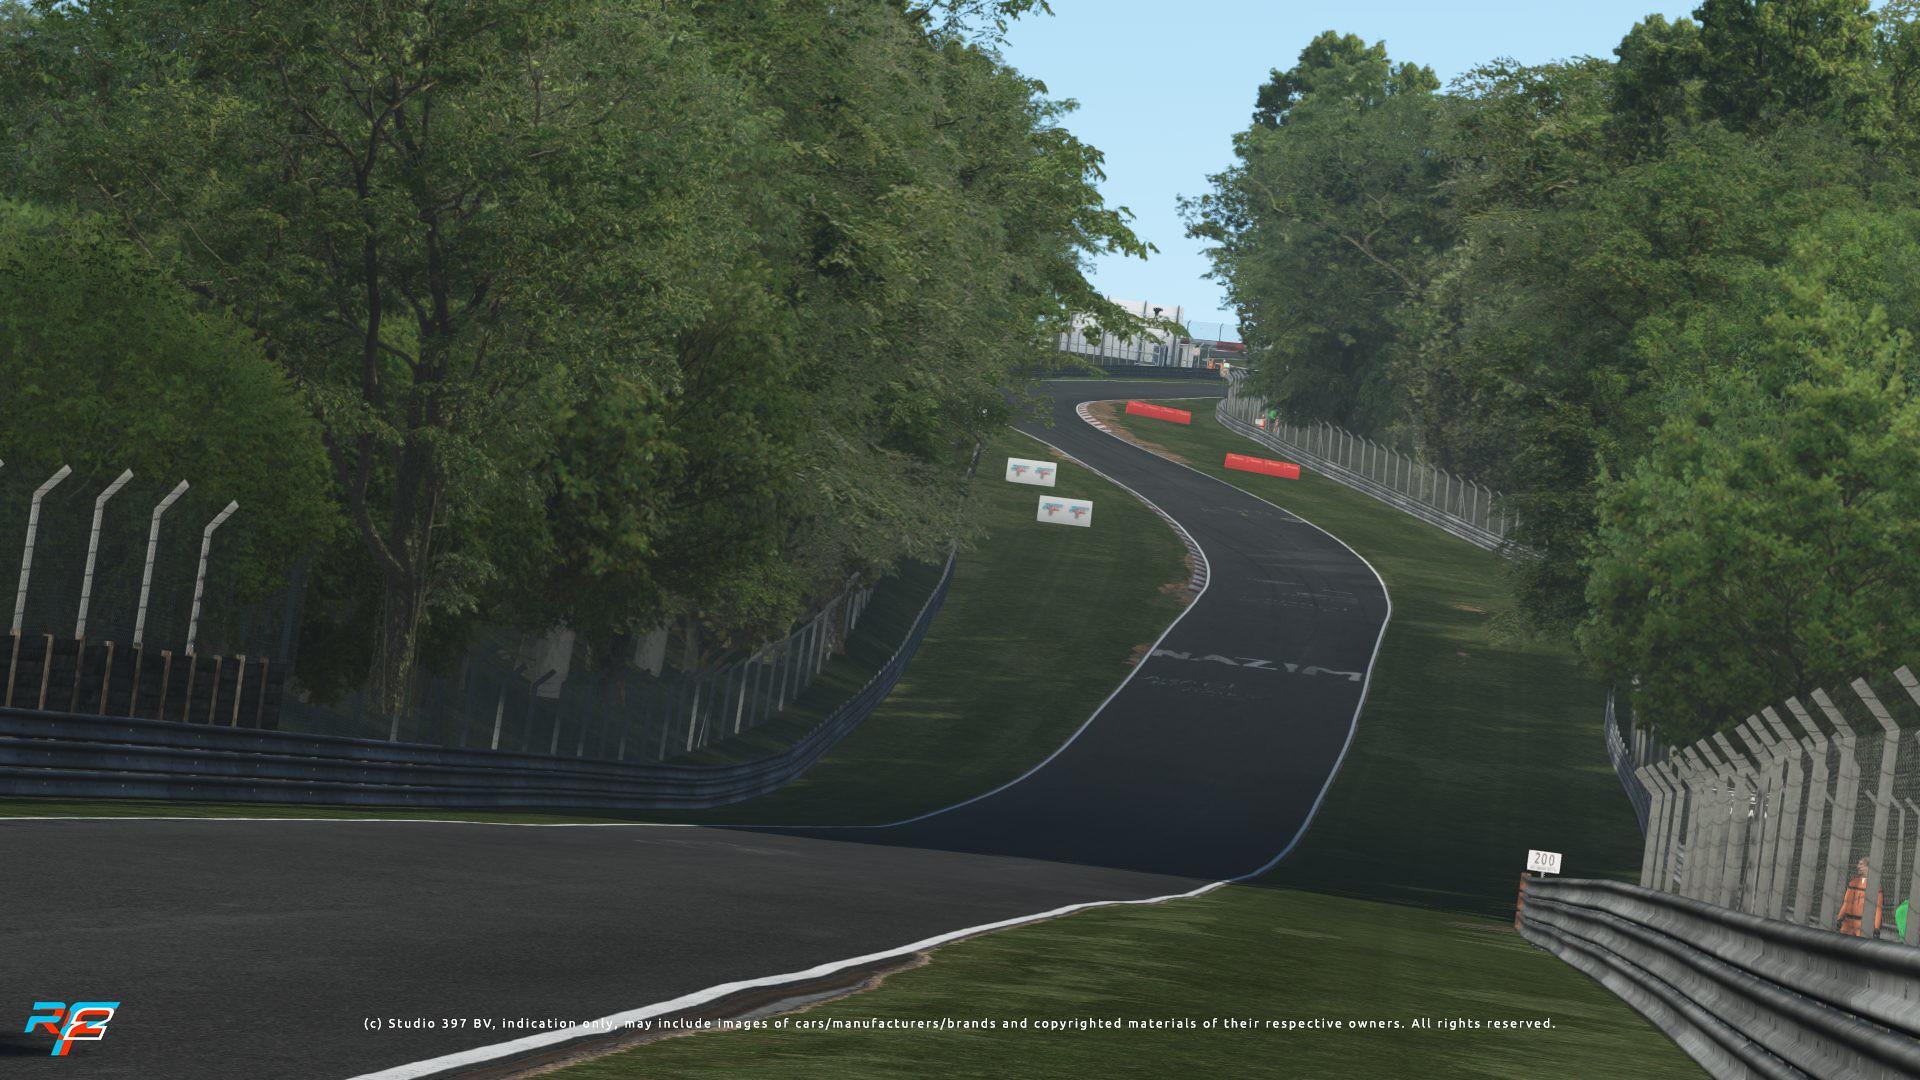 nordschleife_guide_02-1920x1080